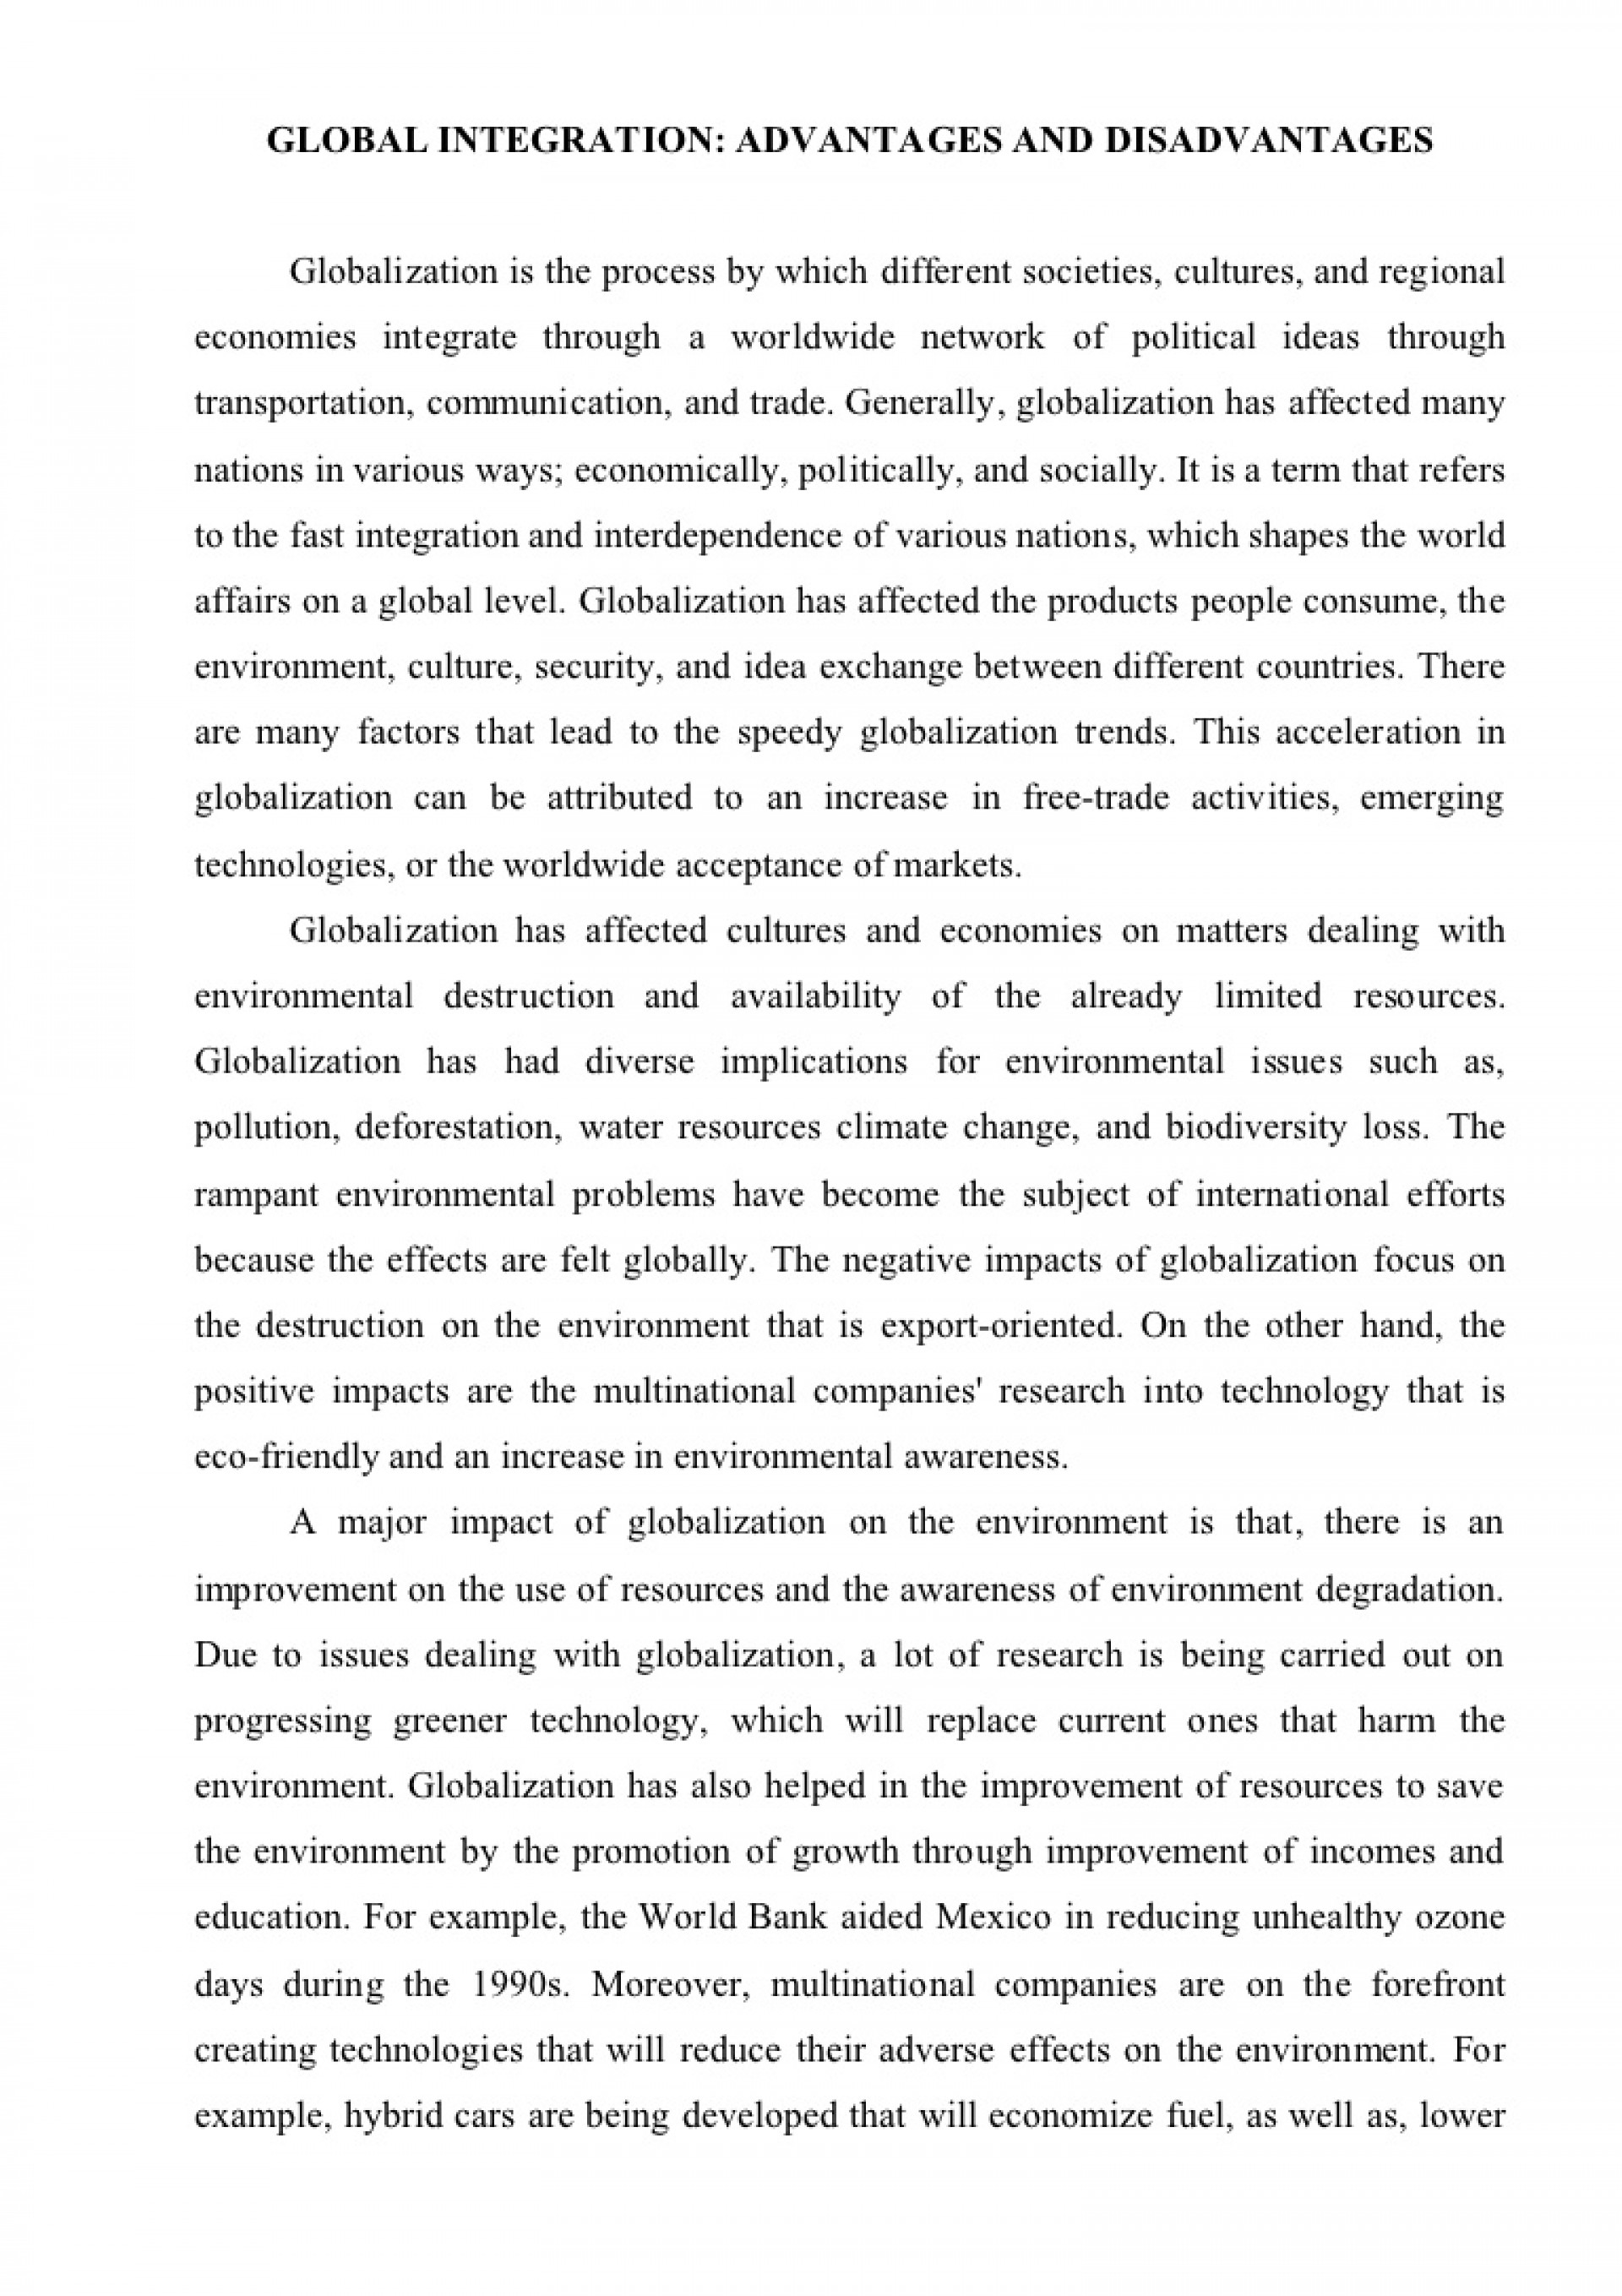 021 Essayglobalization Phpapp02 Thumbnail Essay Example Advantage And Disadvantage Of Shocking Science Advantages Disadvantages With Quotes In Marathi Tamil Language 1920